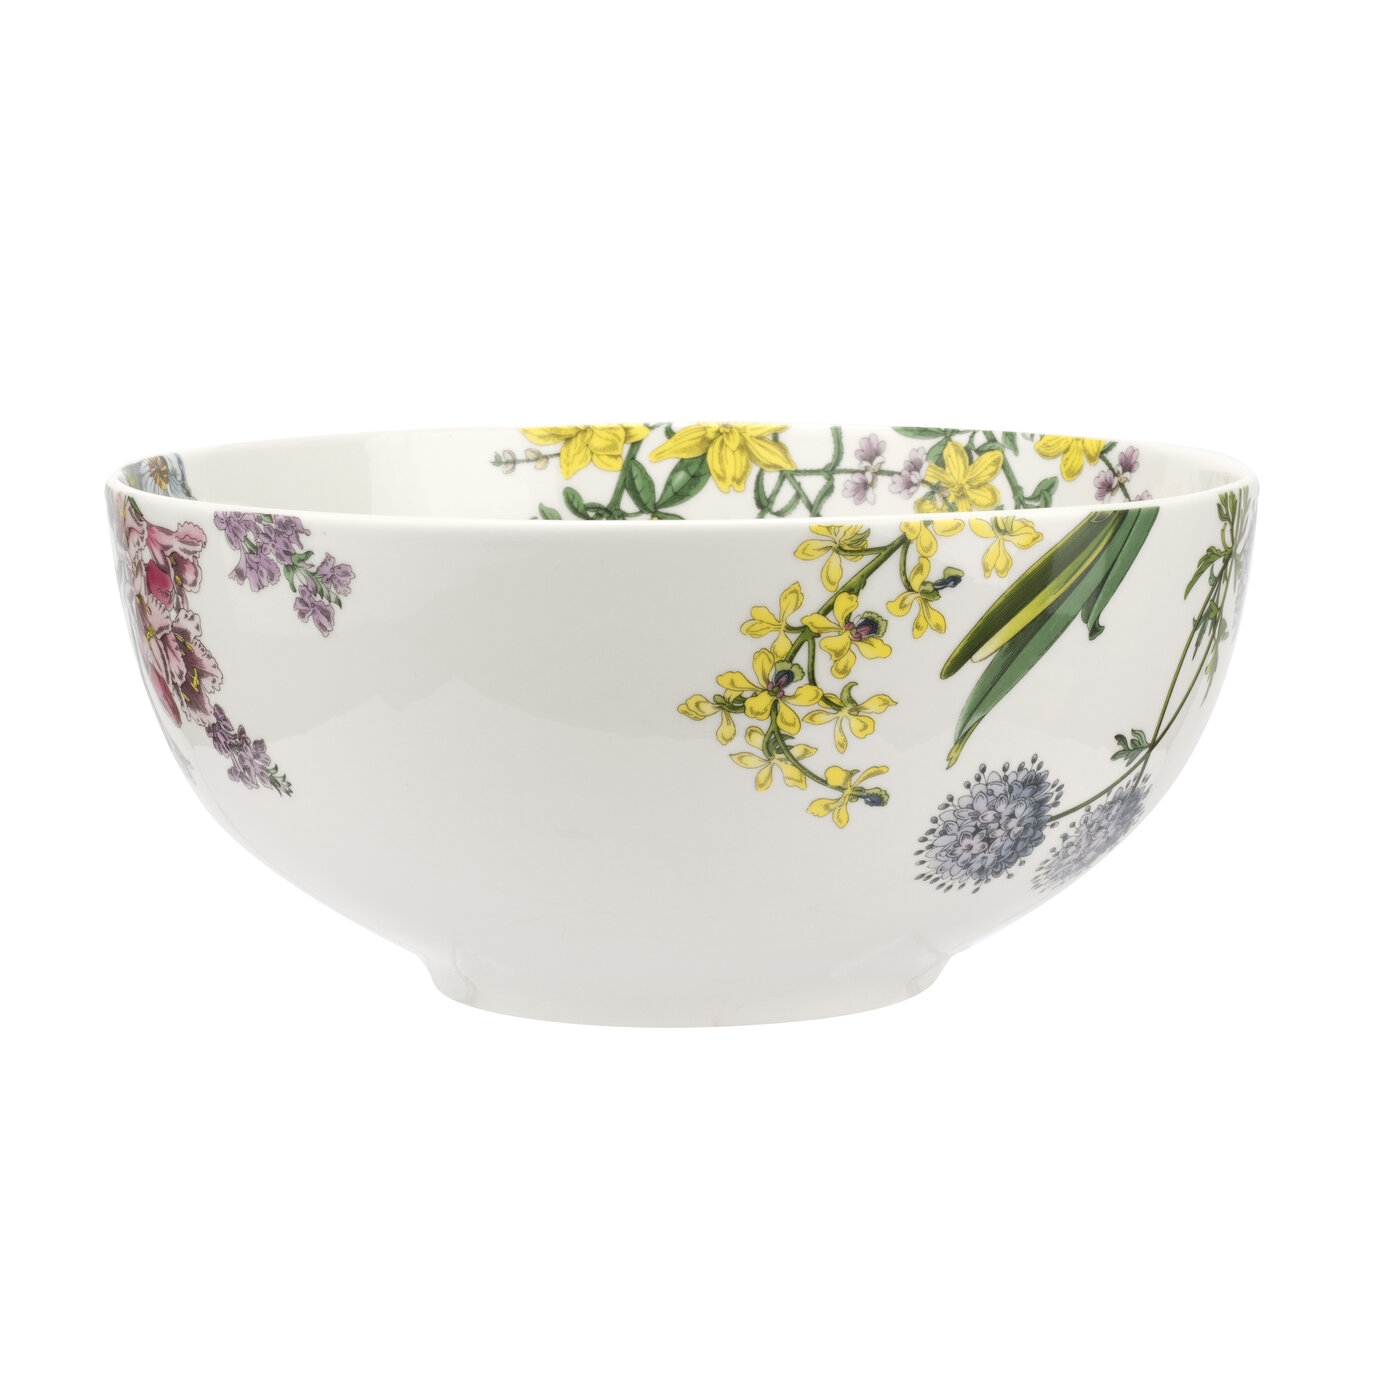 Spode Stafford Blooms 10.75 Inch Bowl image number 0